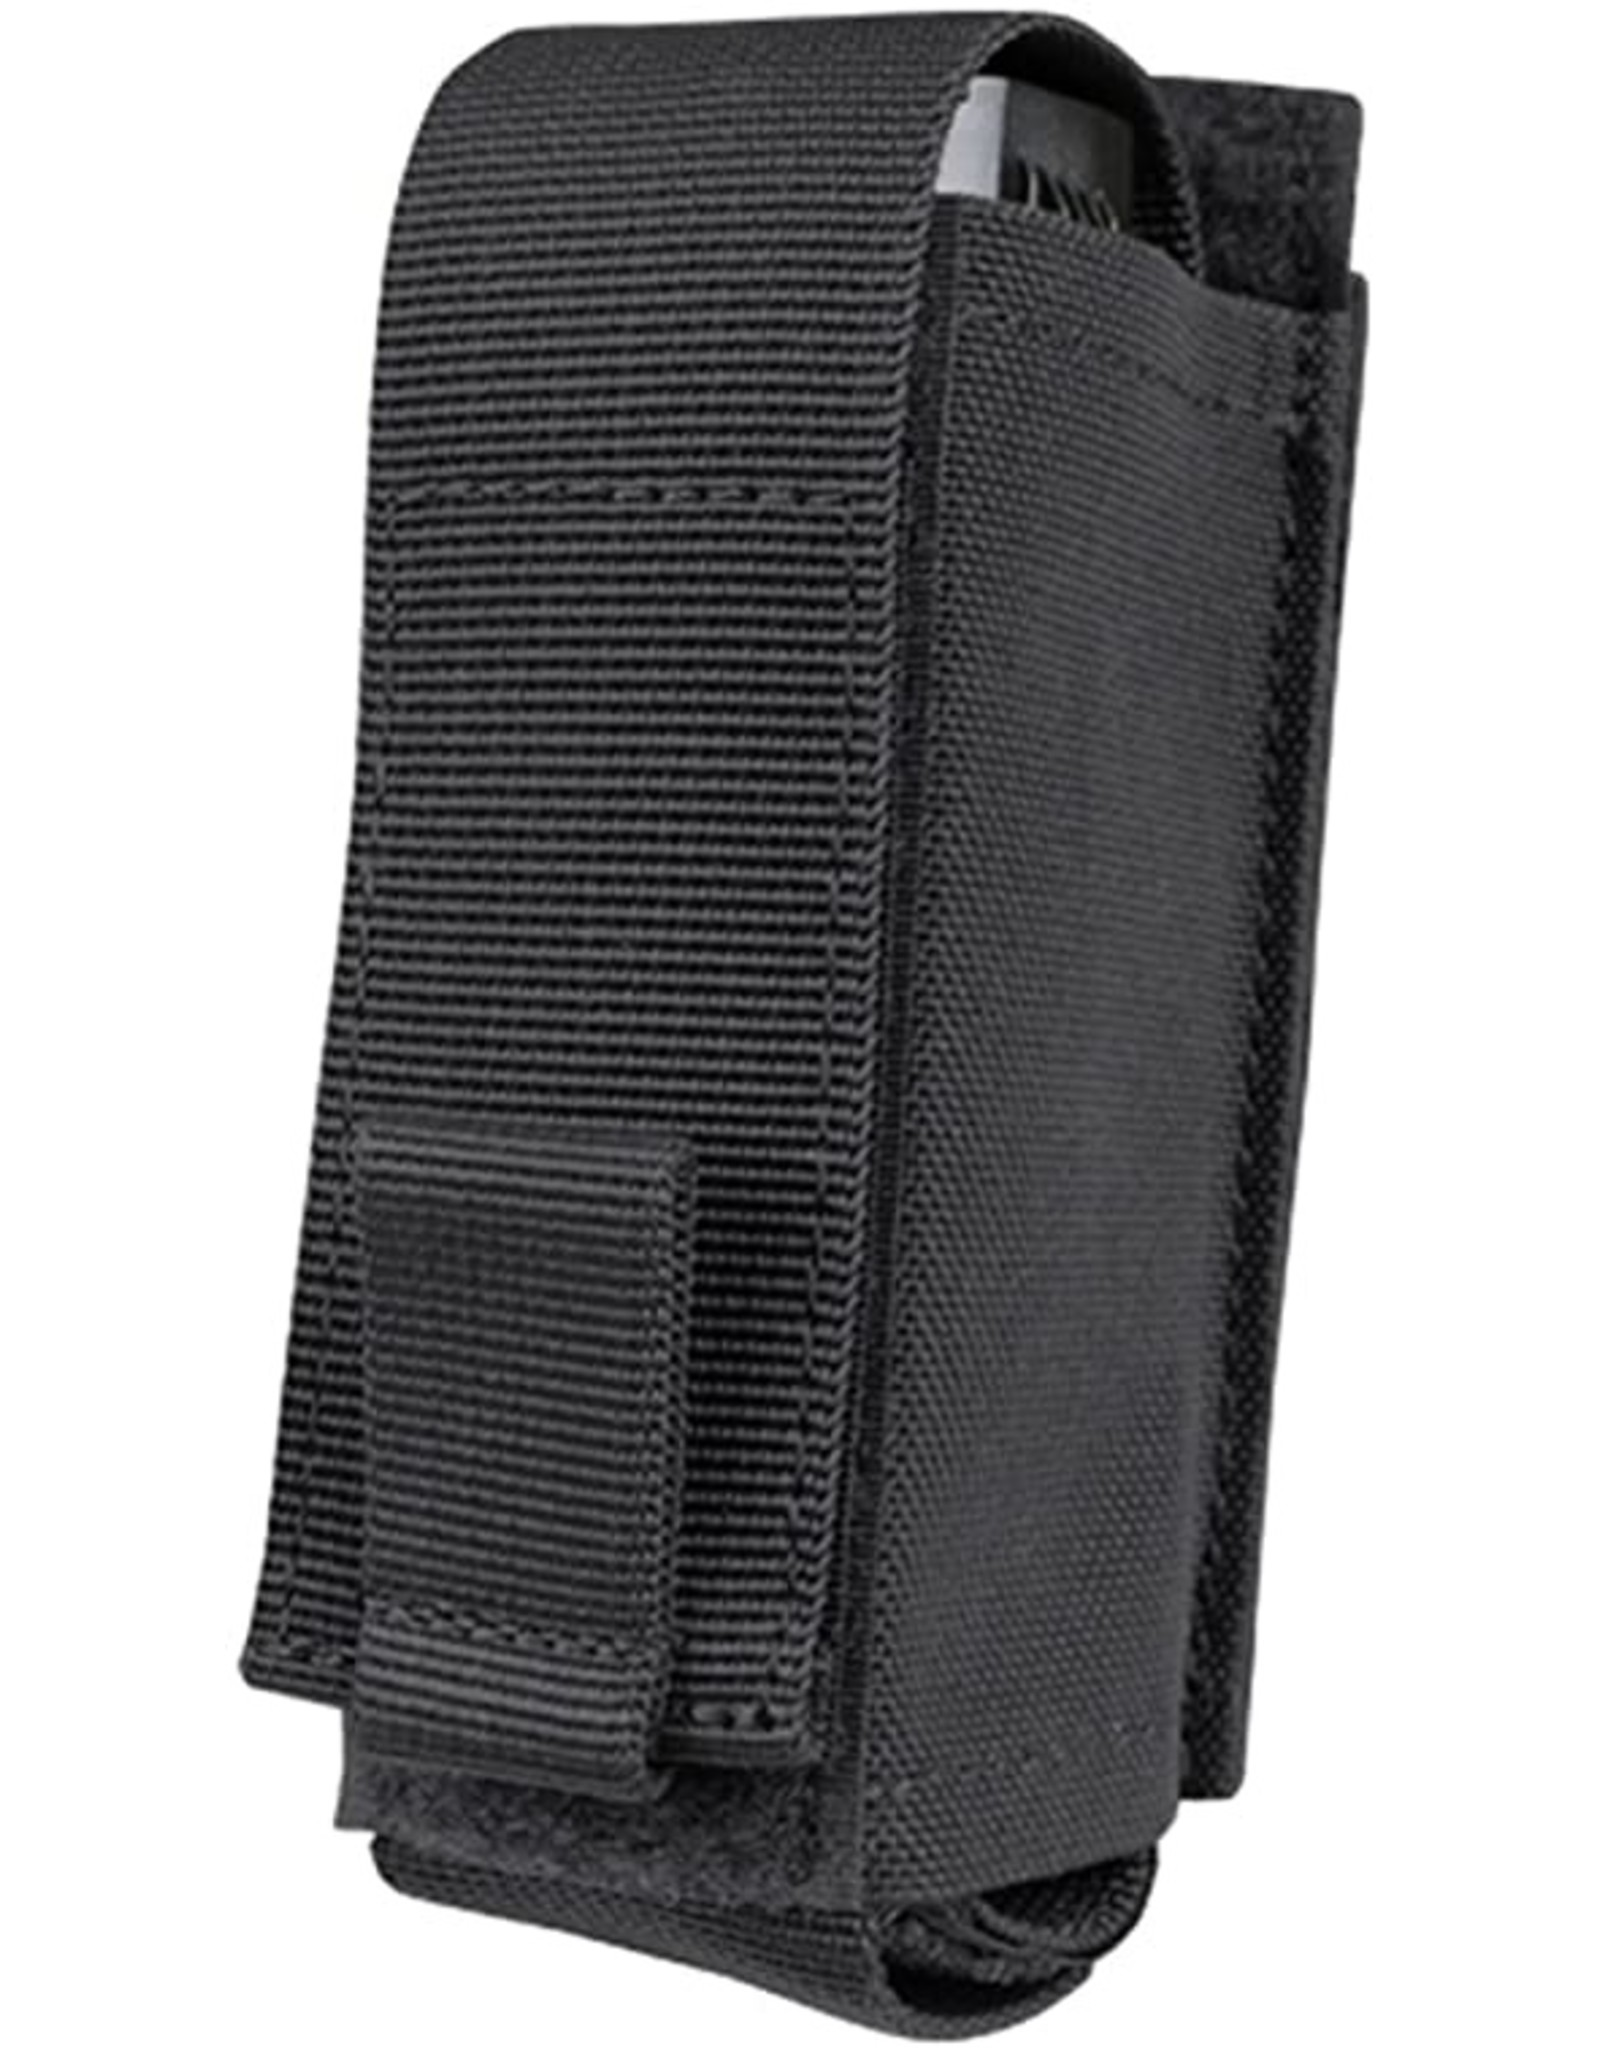 CONDOR TACTICAL OC POUCH